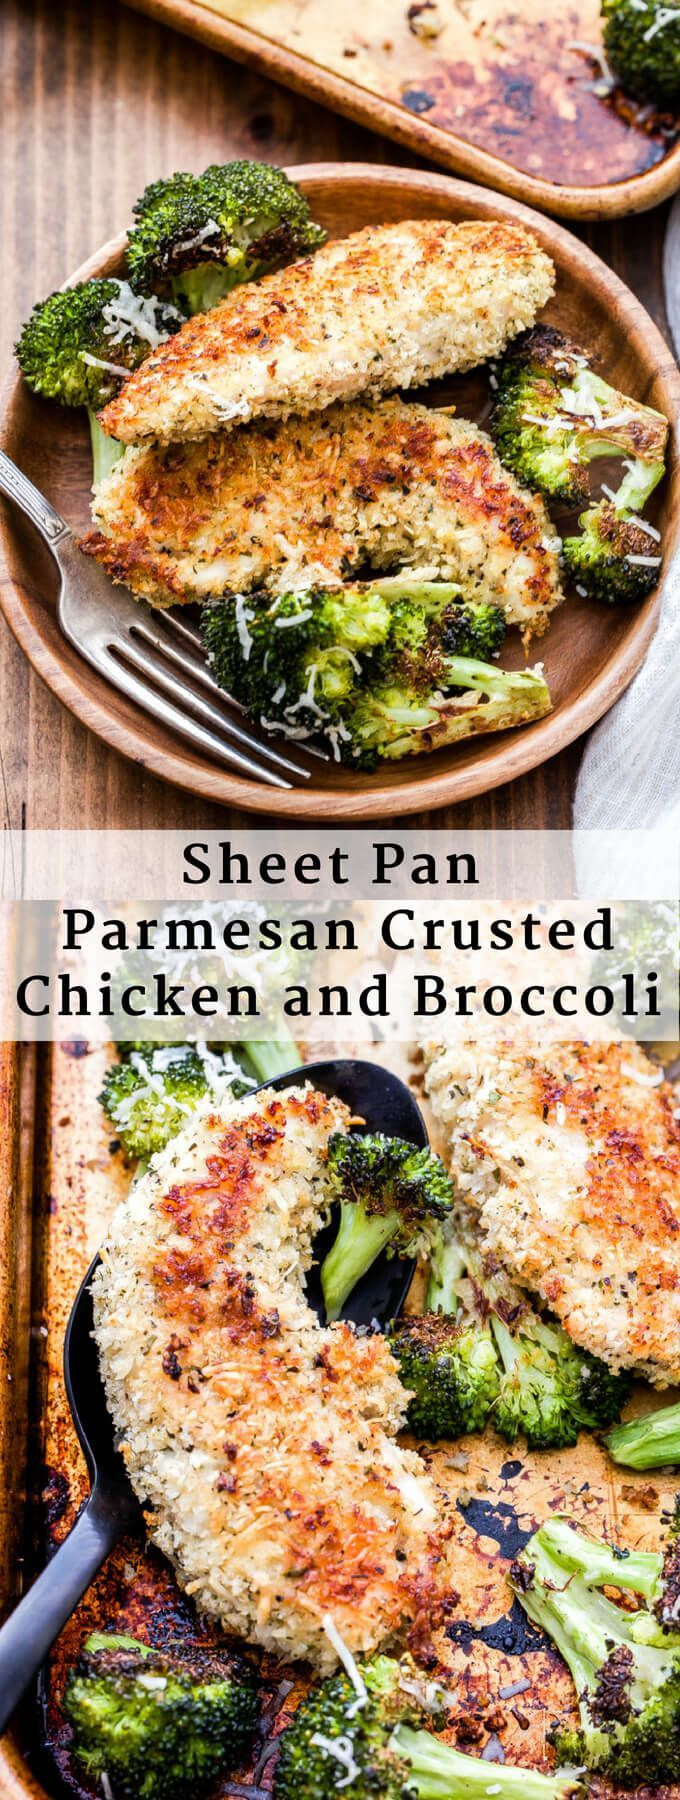 Sheet Pan Parmesan Crusted Chicken and Broccoli is a family friendly, easy to ma…